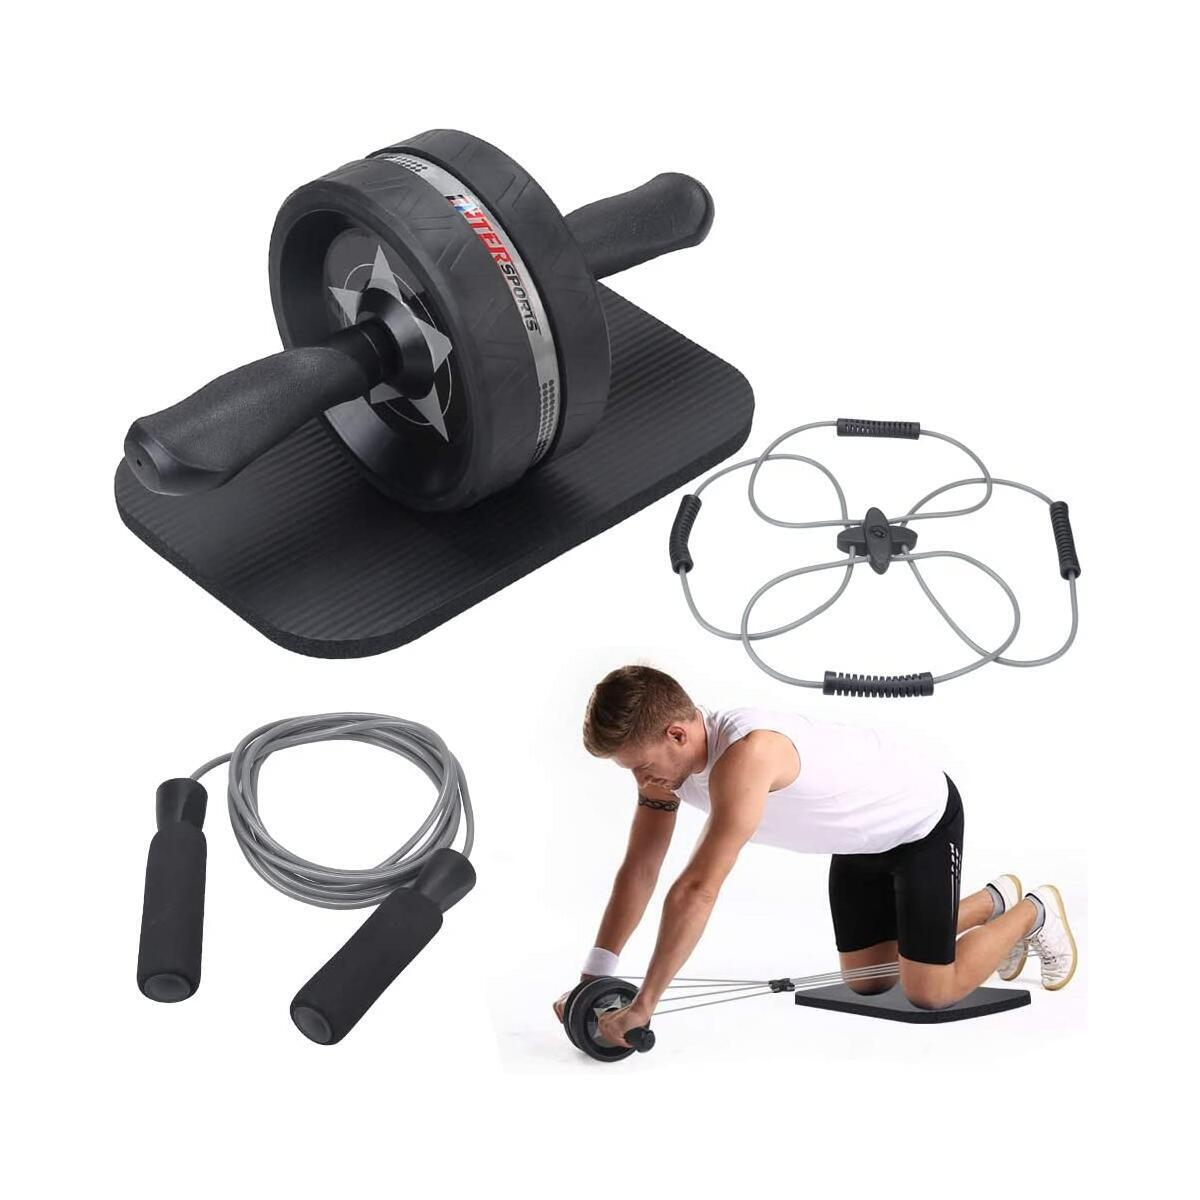 EnterSports Ab Roller Wheel, 4 in 1 Ab Roller Kit with Knee Pad, Multifunctional Resistance Band, Jump Rope